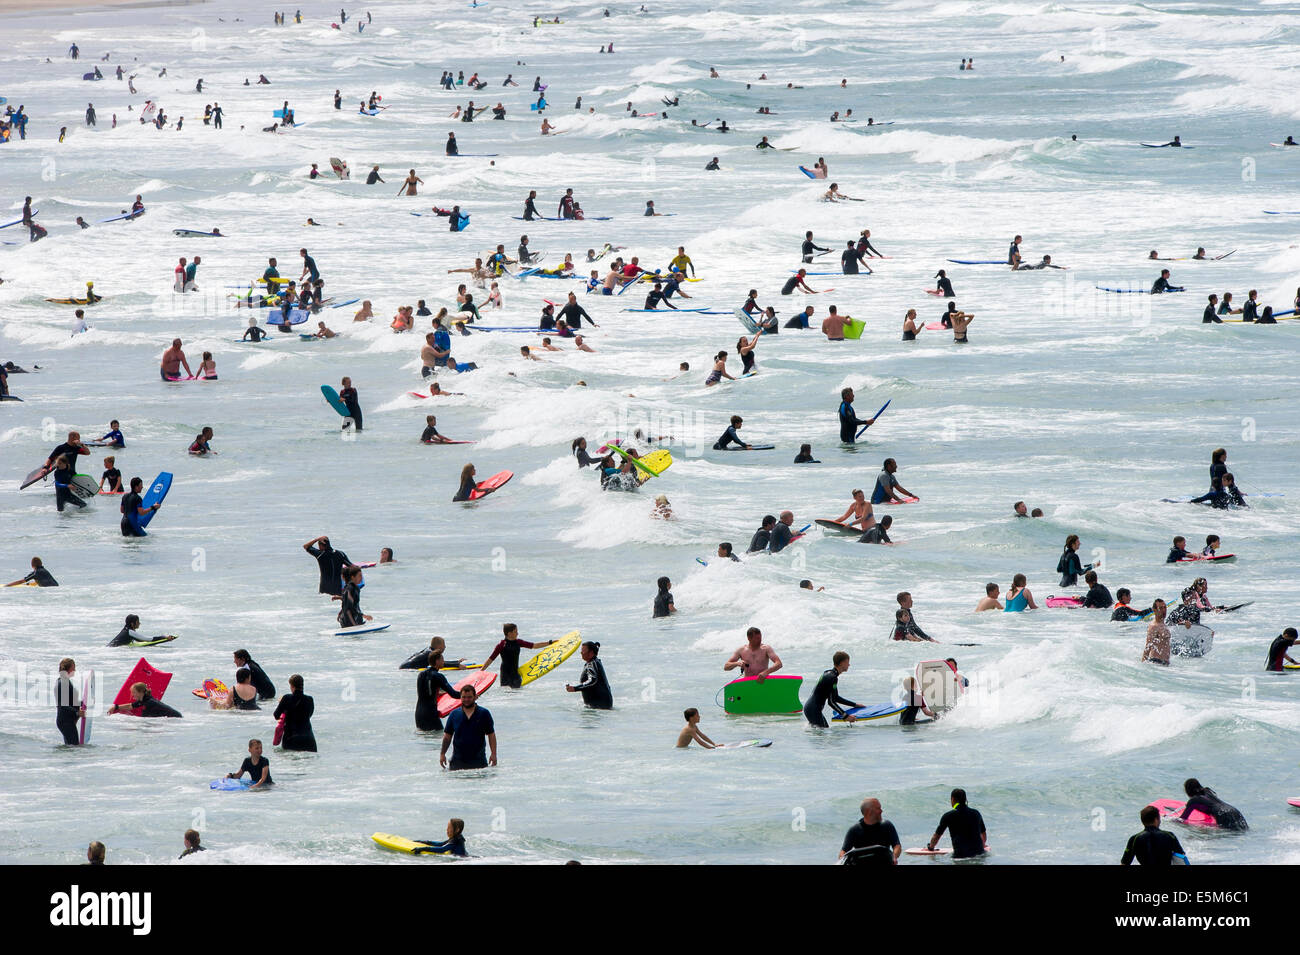 Sunbathers cool off in the sea on the busiest day of the year at Woolacombe beach, Devon, UK Stock Photo